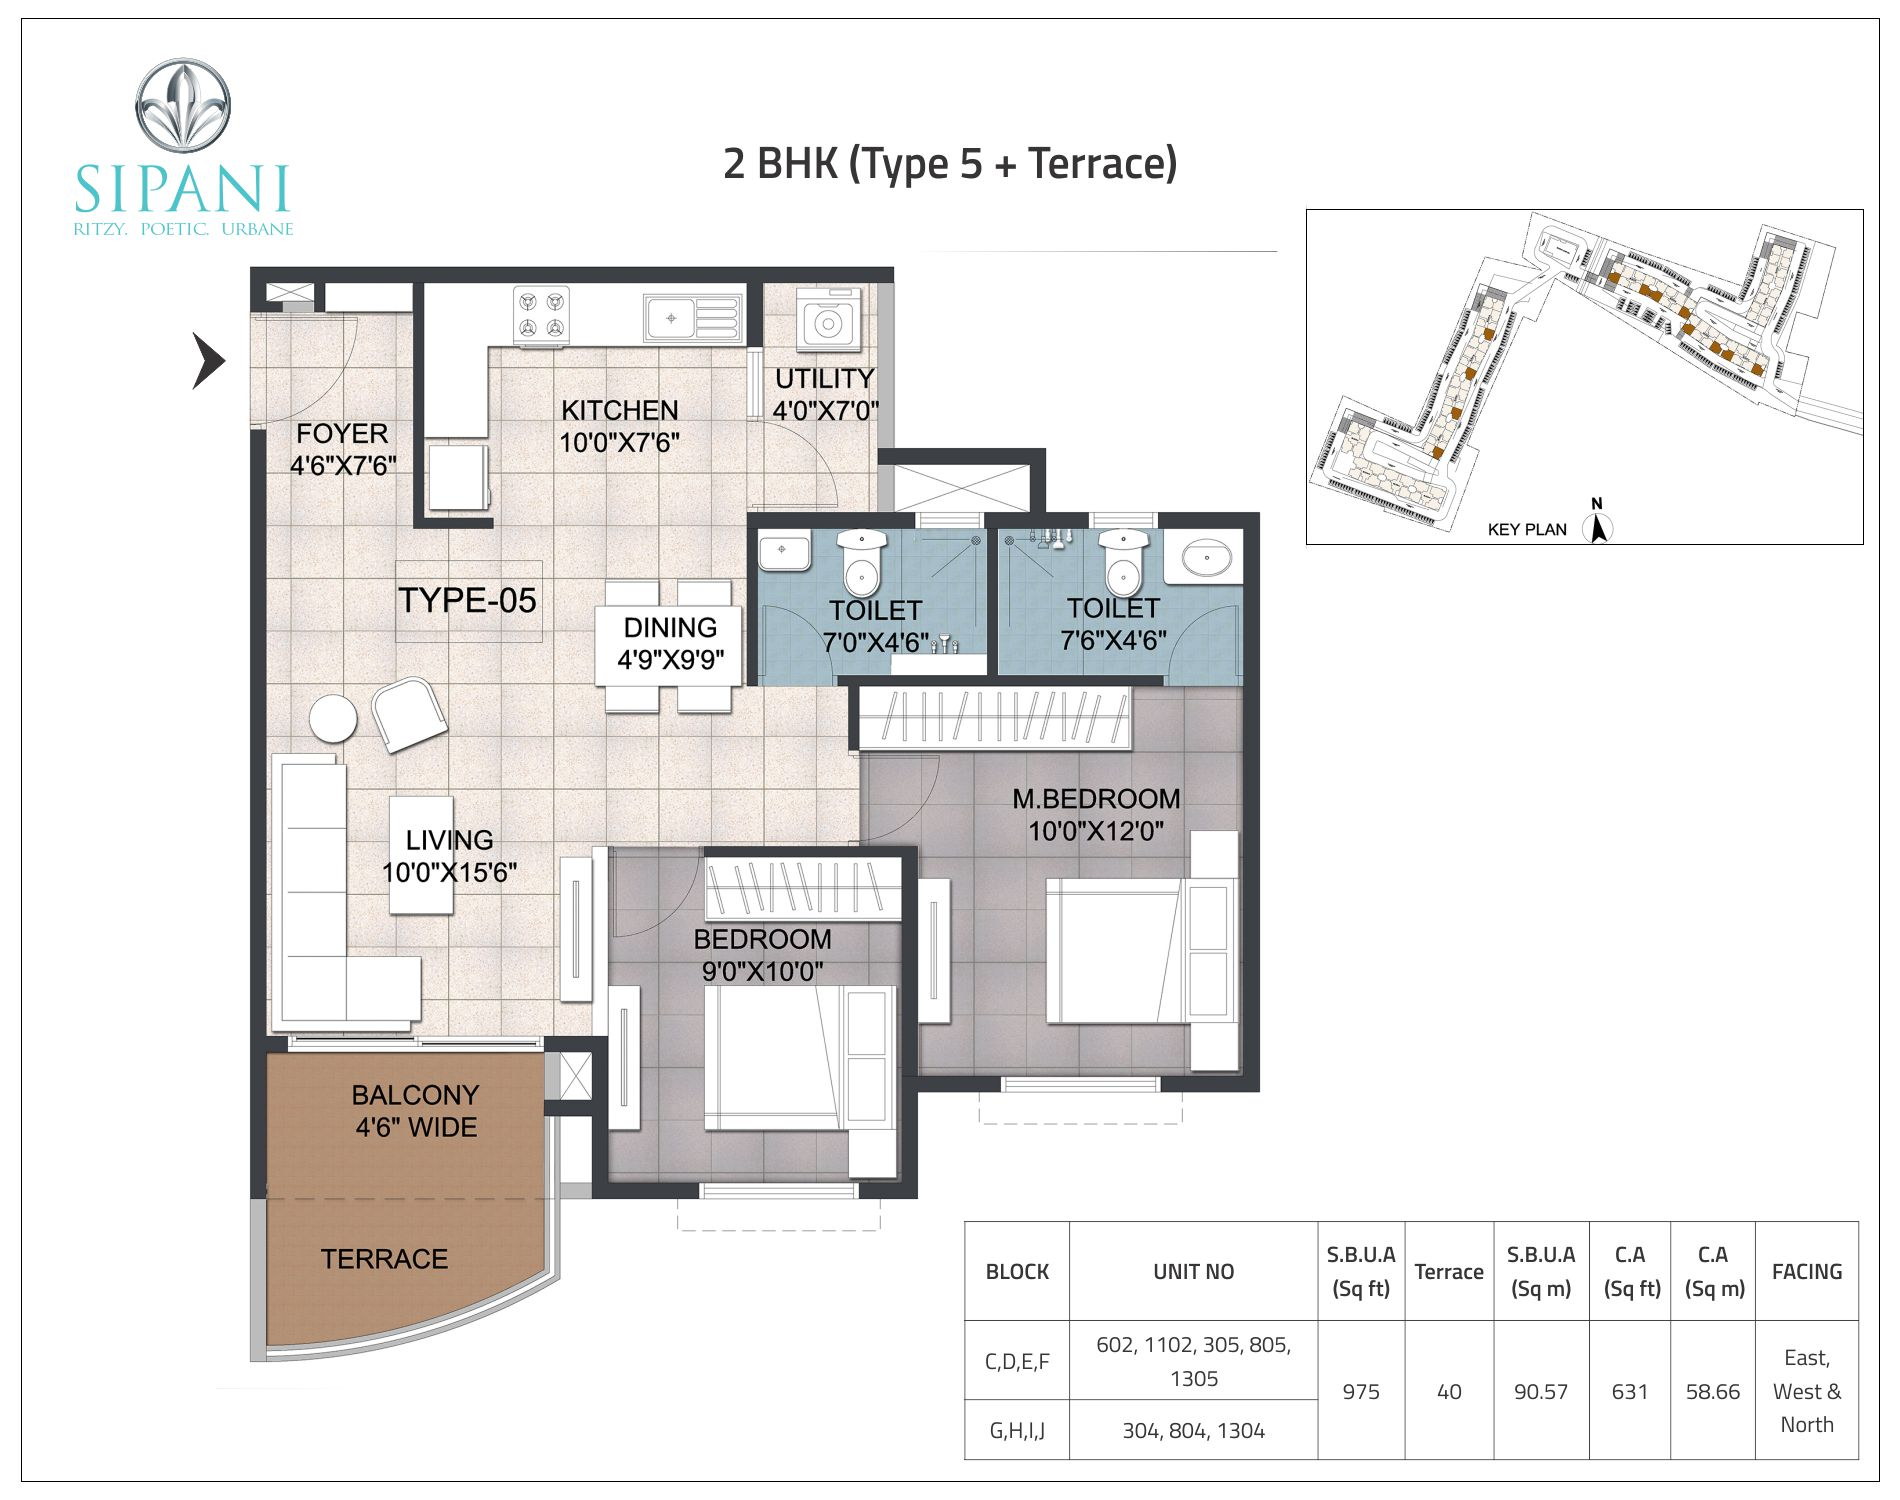 2_BHK_(Type_5+Terrace)